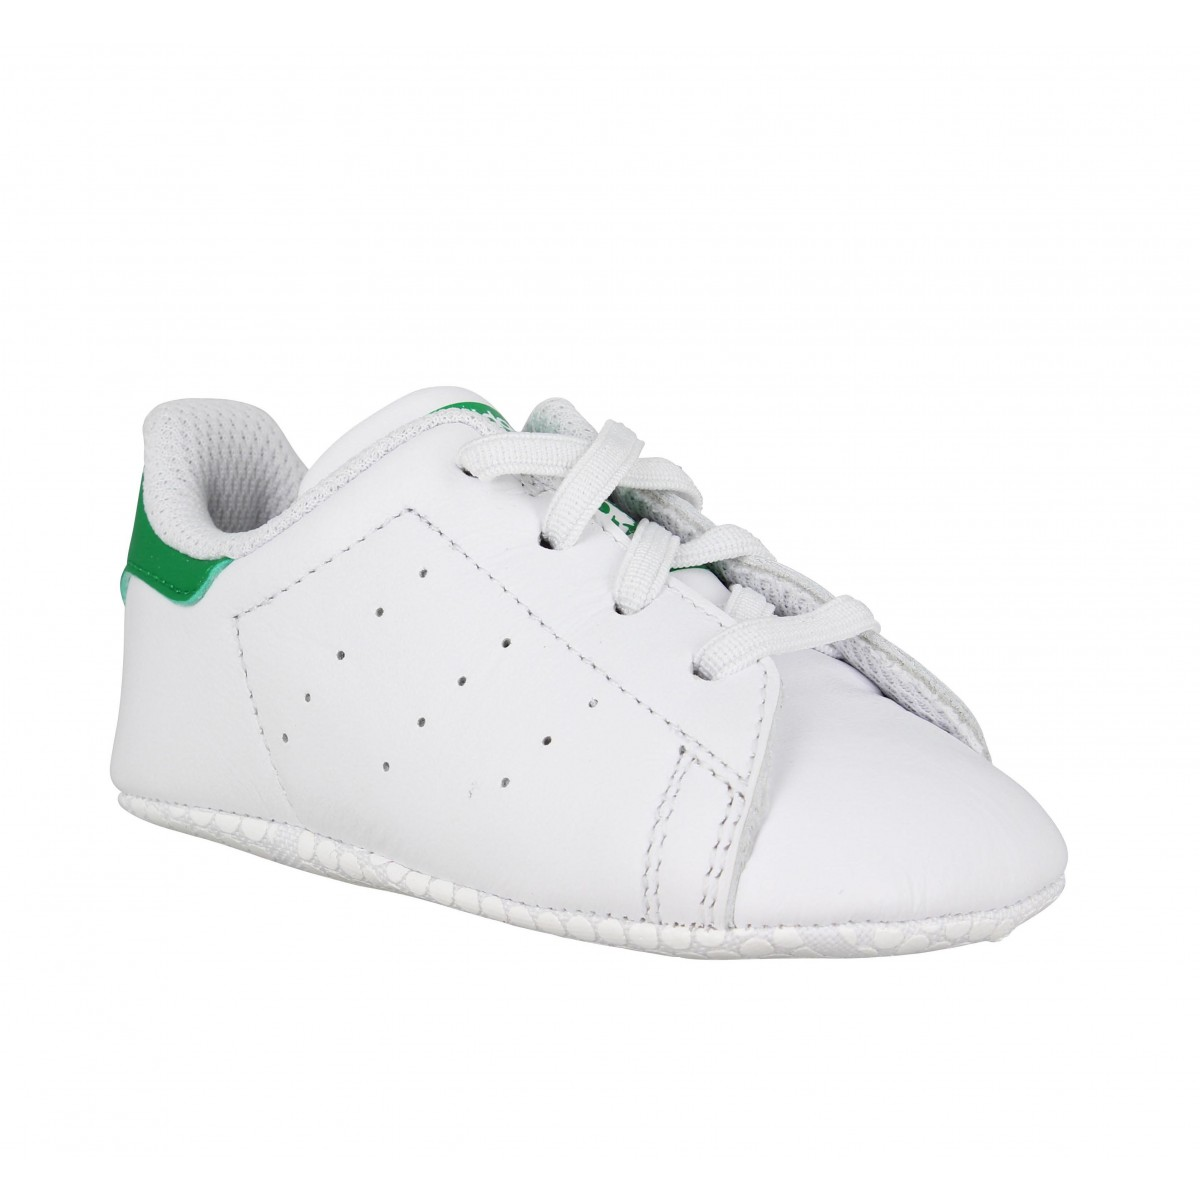 buy online 68035 29378 Baskets ADIDAS Stan Smith Bebe cuir Enfant Blanc + Vert